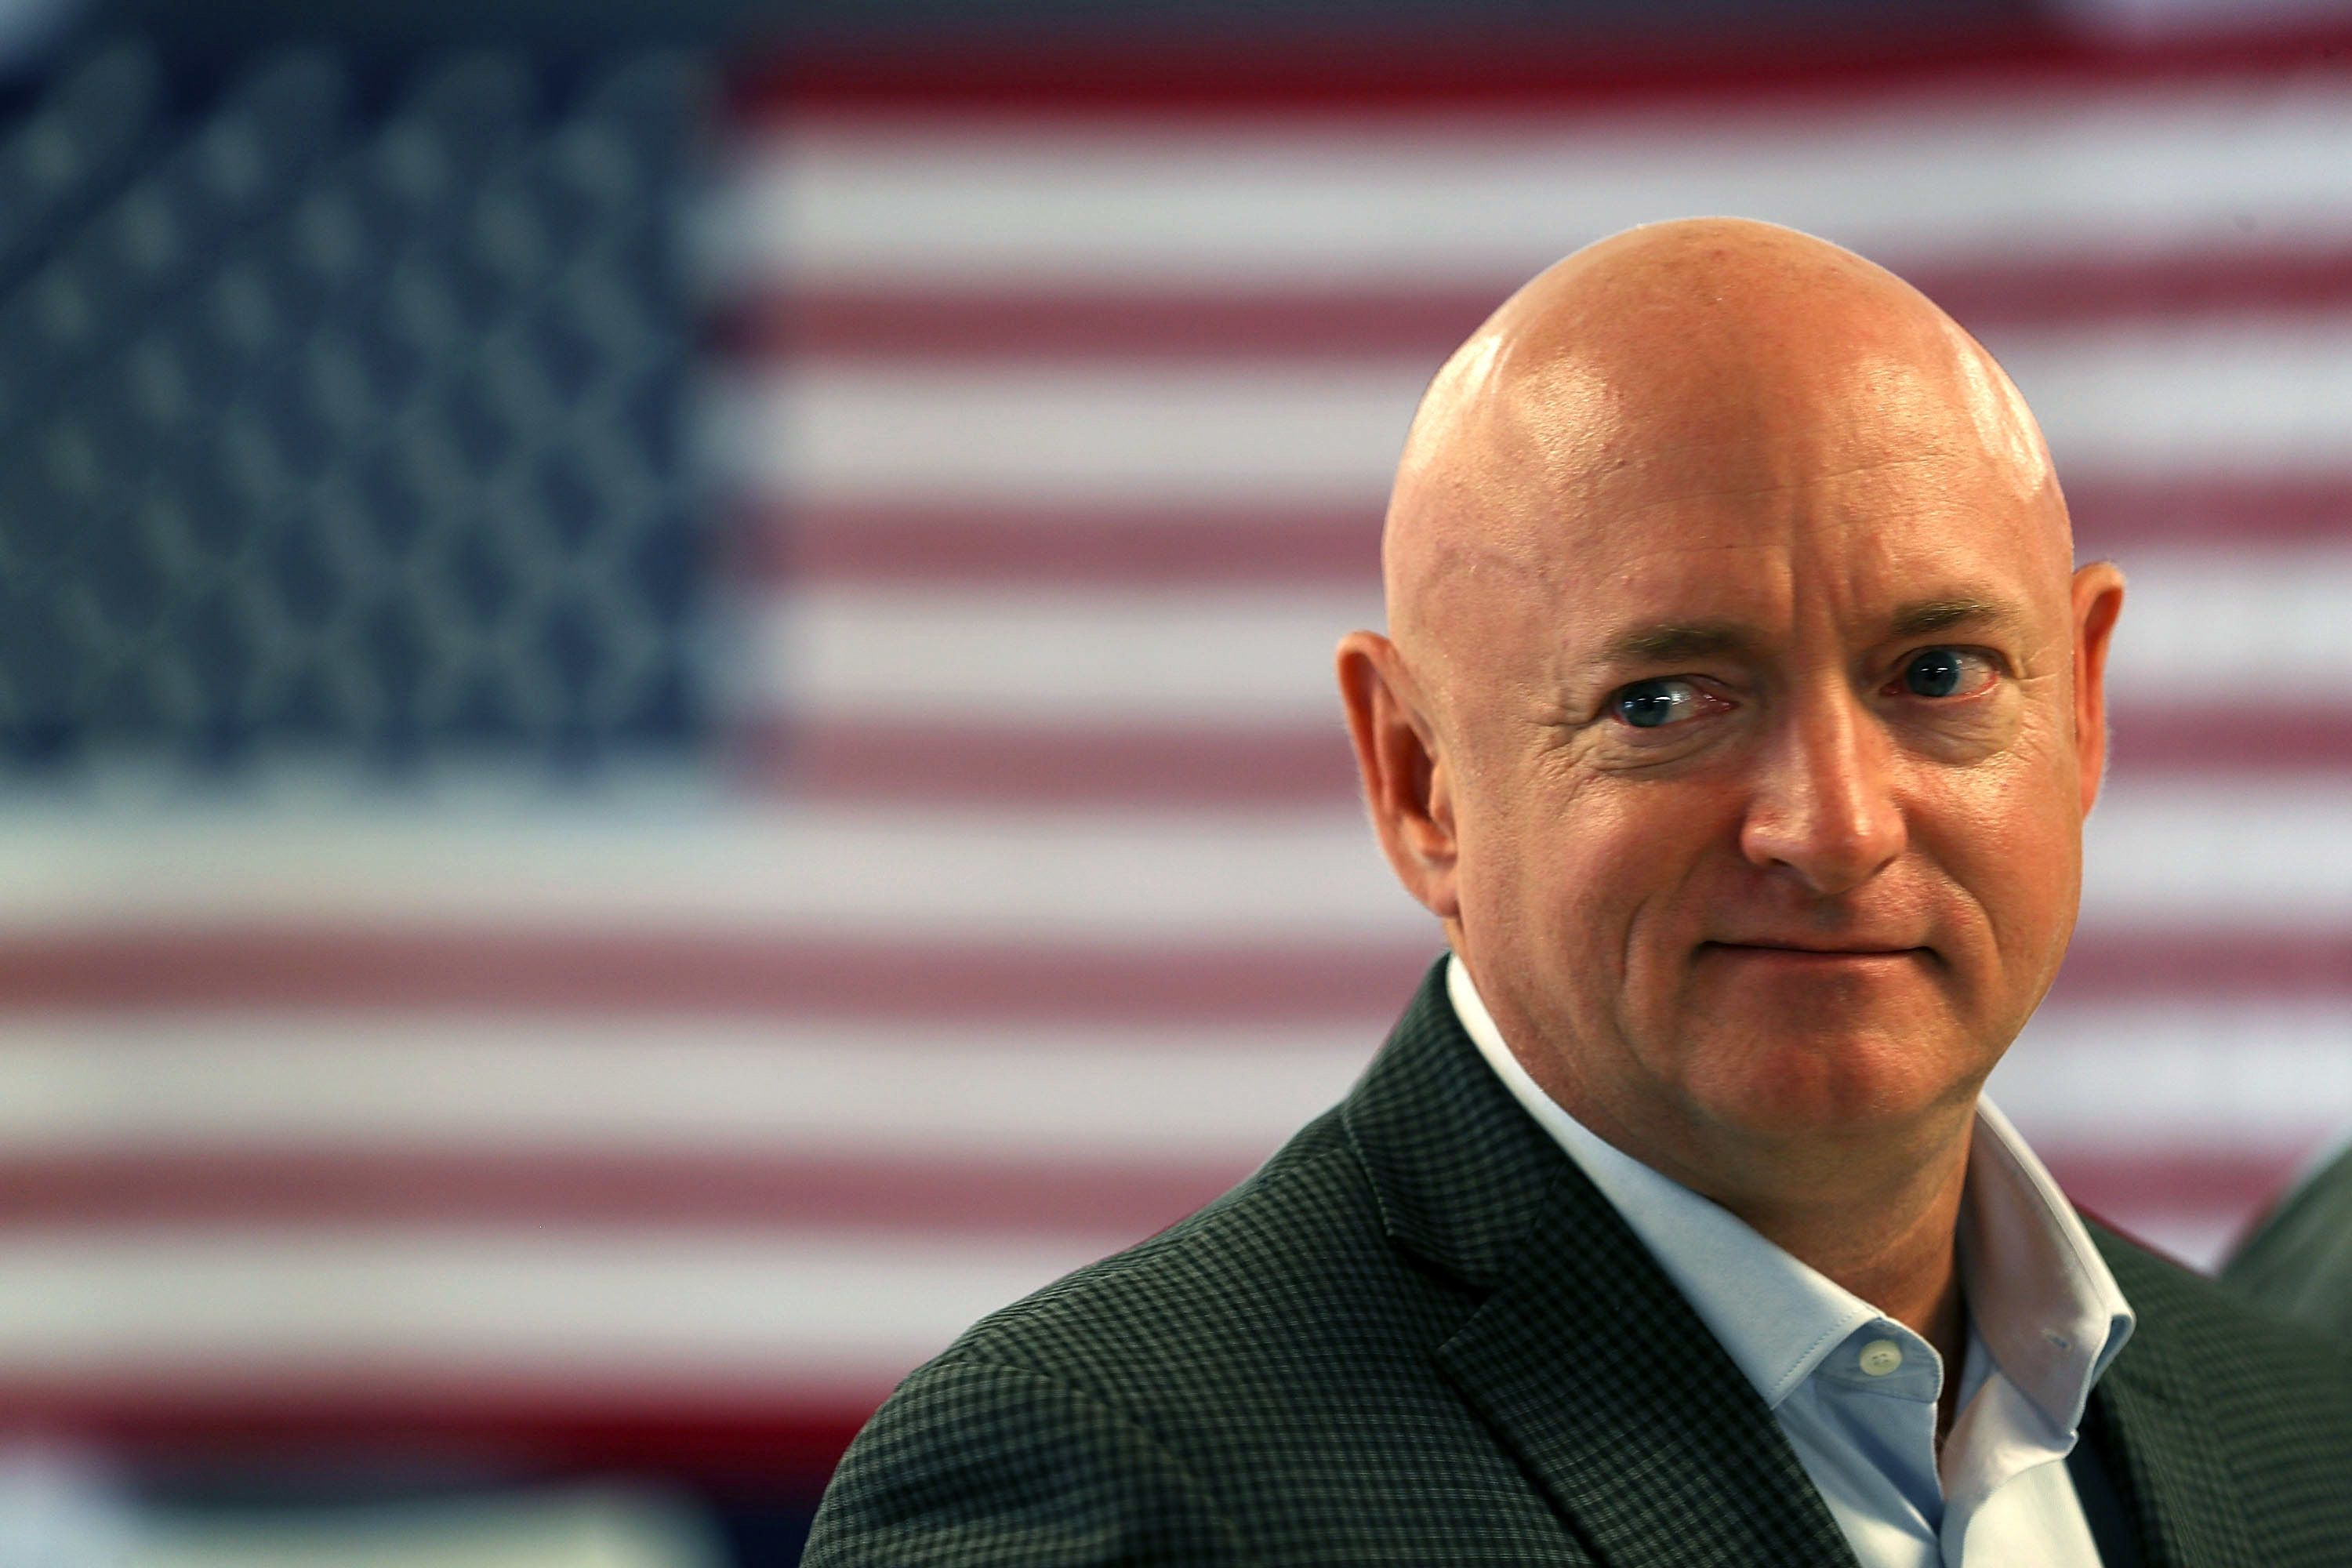 Mark Kelly, a gun control advocate, former astronaut and husband of former Rep. Gabrielle Giffords, will be a top Democratic